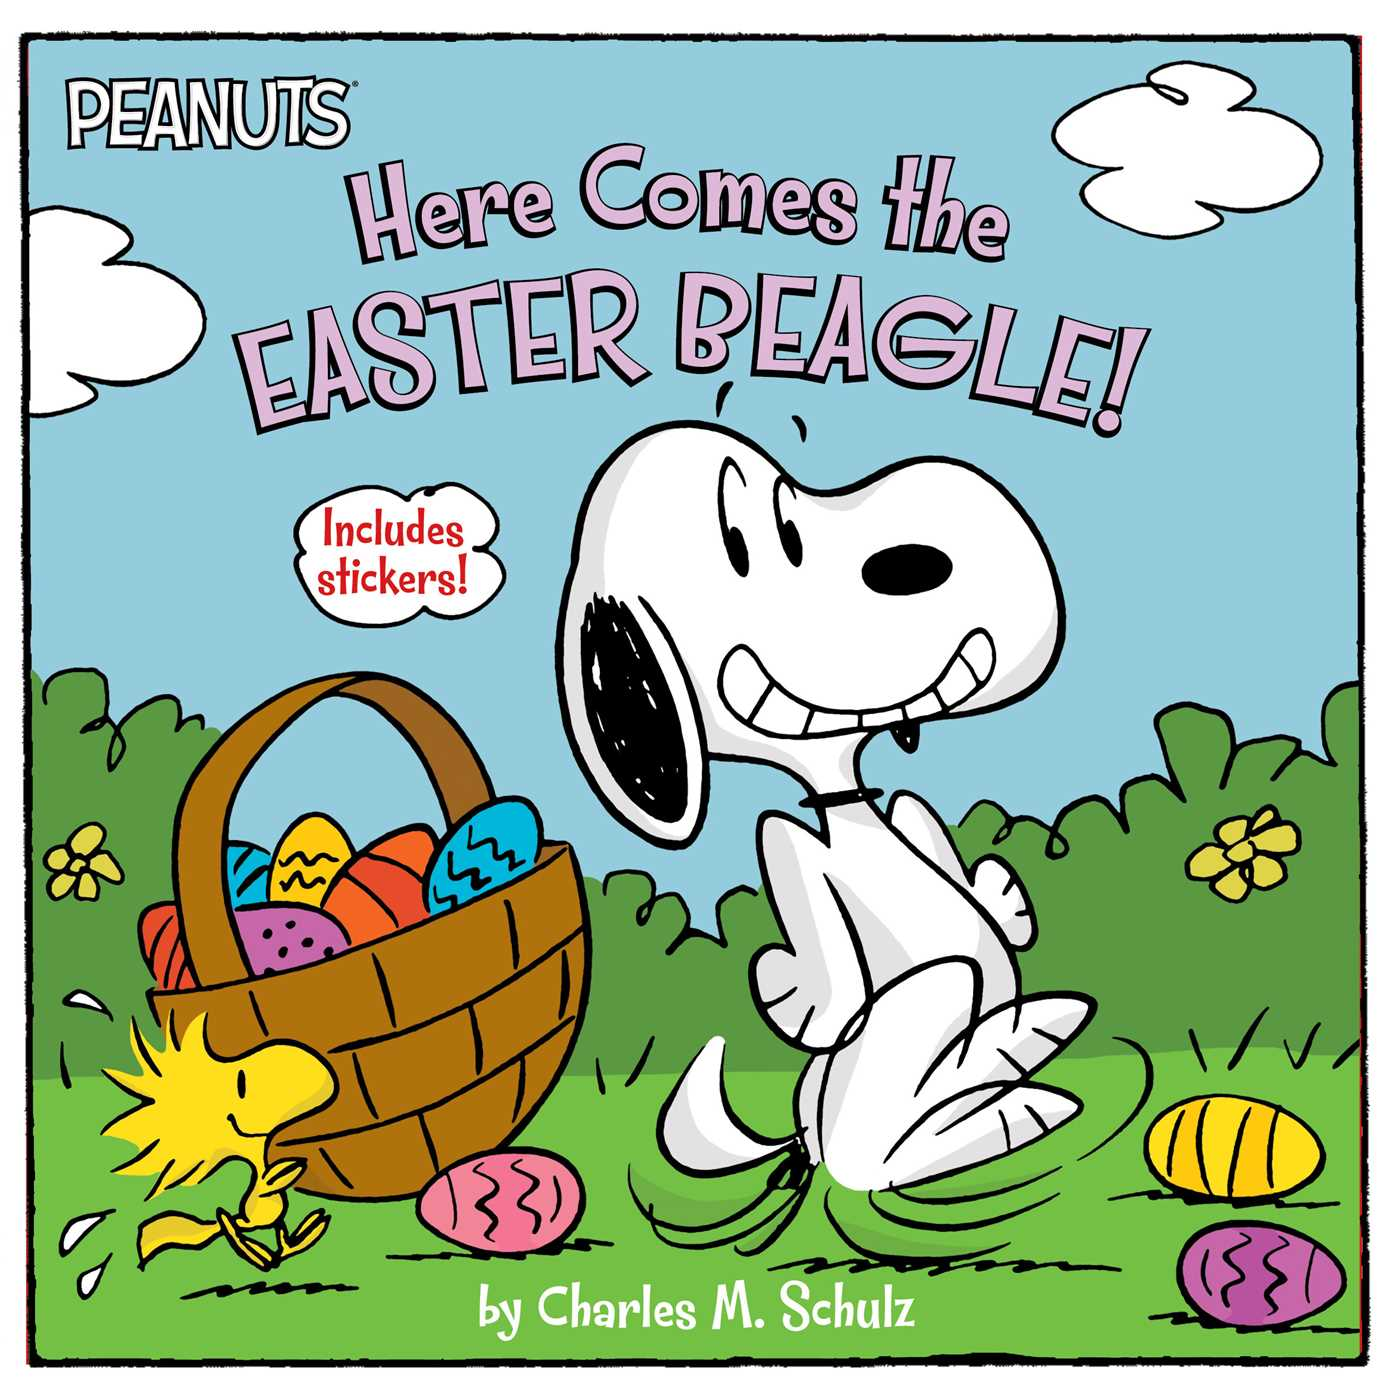 1400x1400 Here Comes The Easter Beagle! Book By Charles M. Schulz, Jason